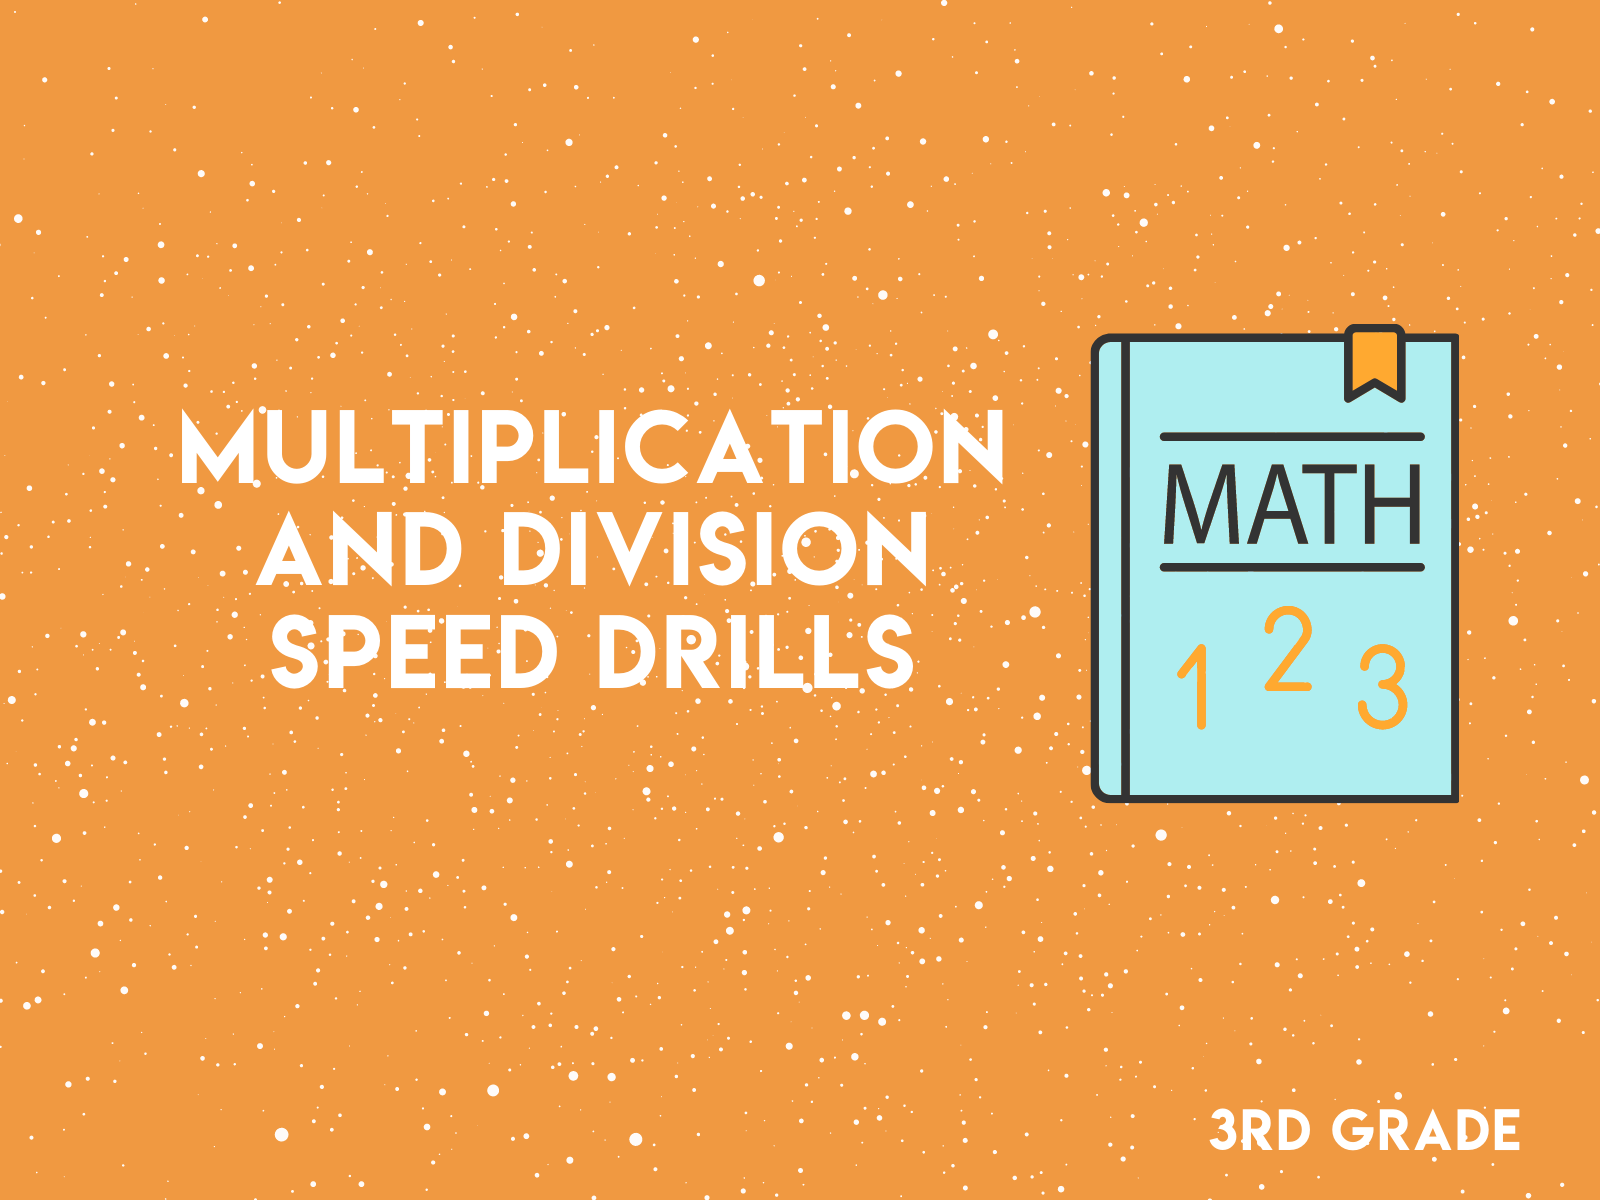 3rd Grade - Multiplication and Division Speed Drills